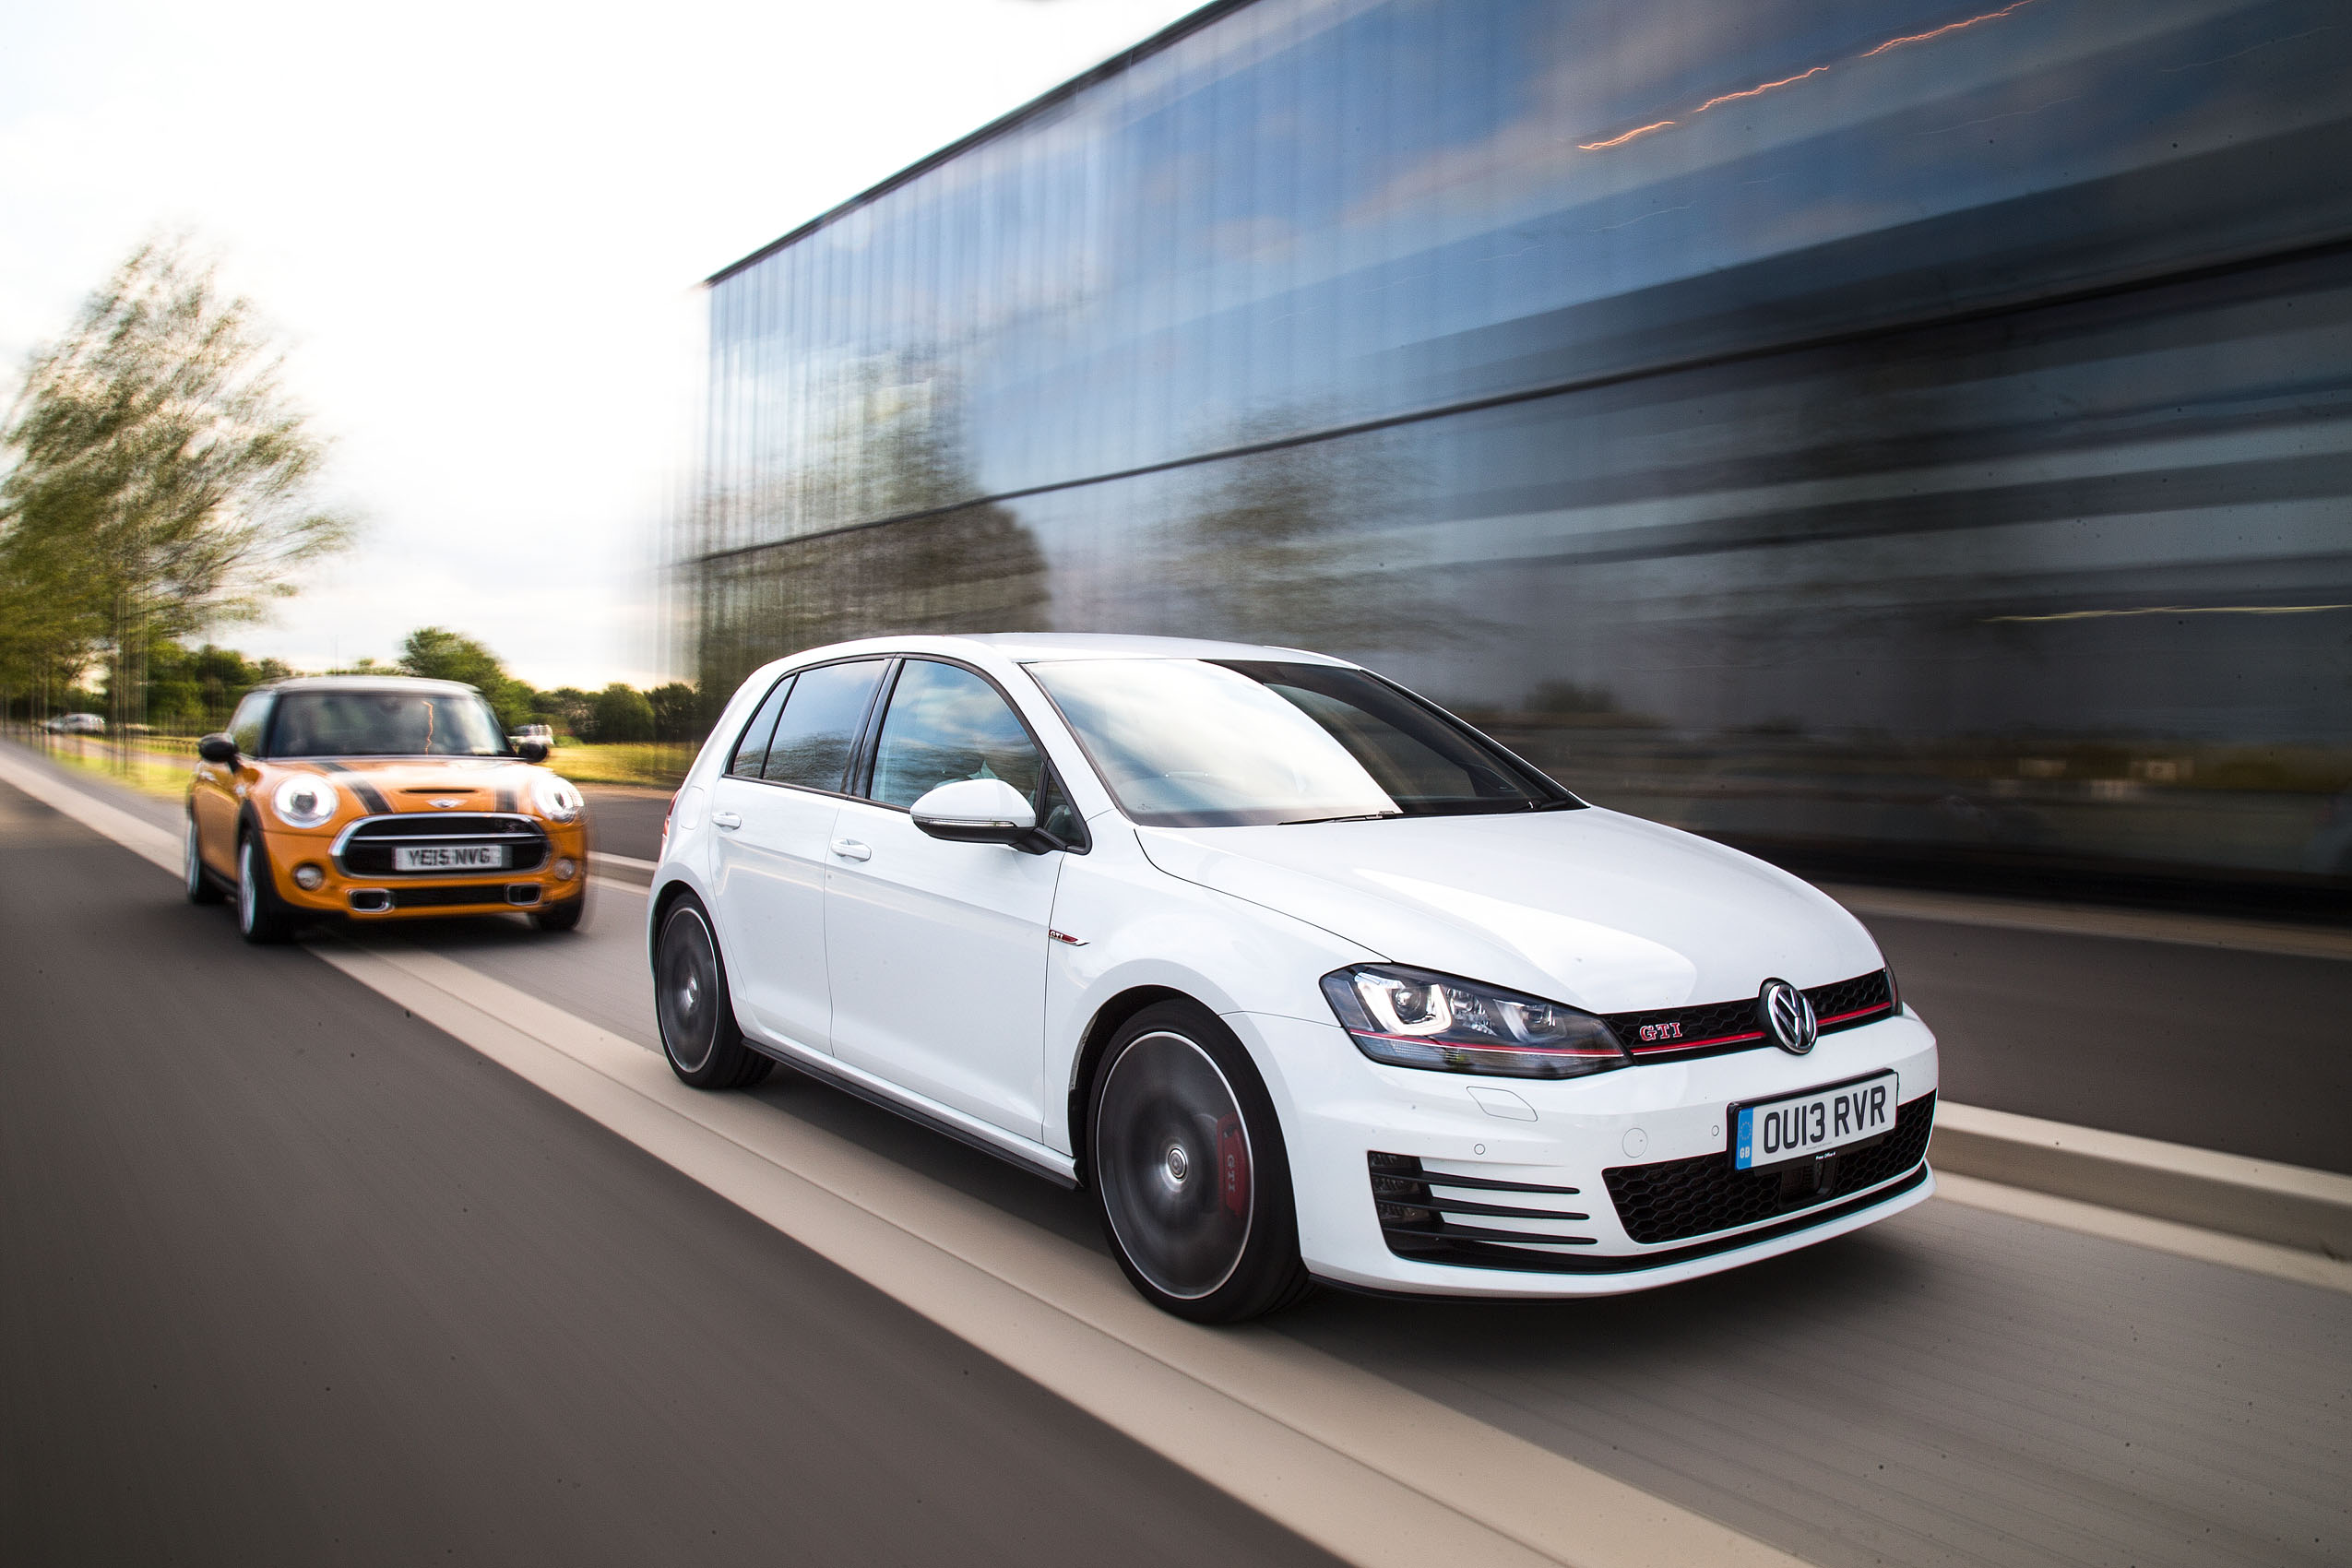 clubsport be the probably is sold but race volkswagen gti there used already always if t here won club sport s not golf